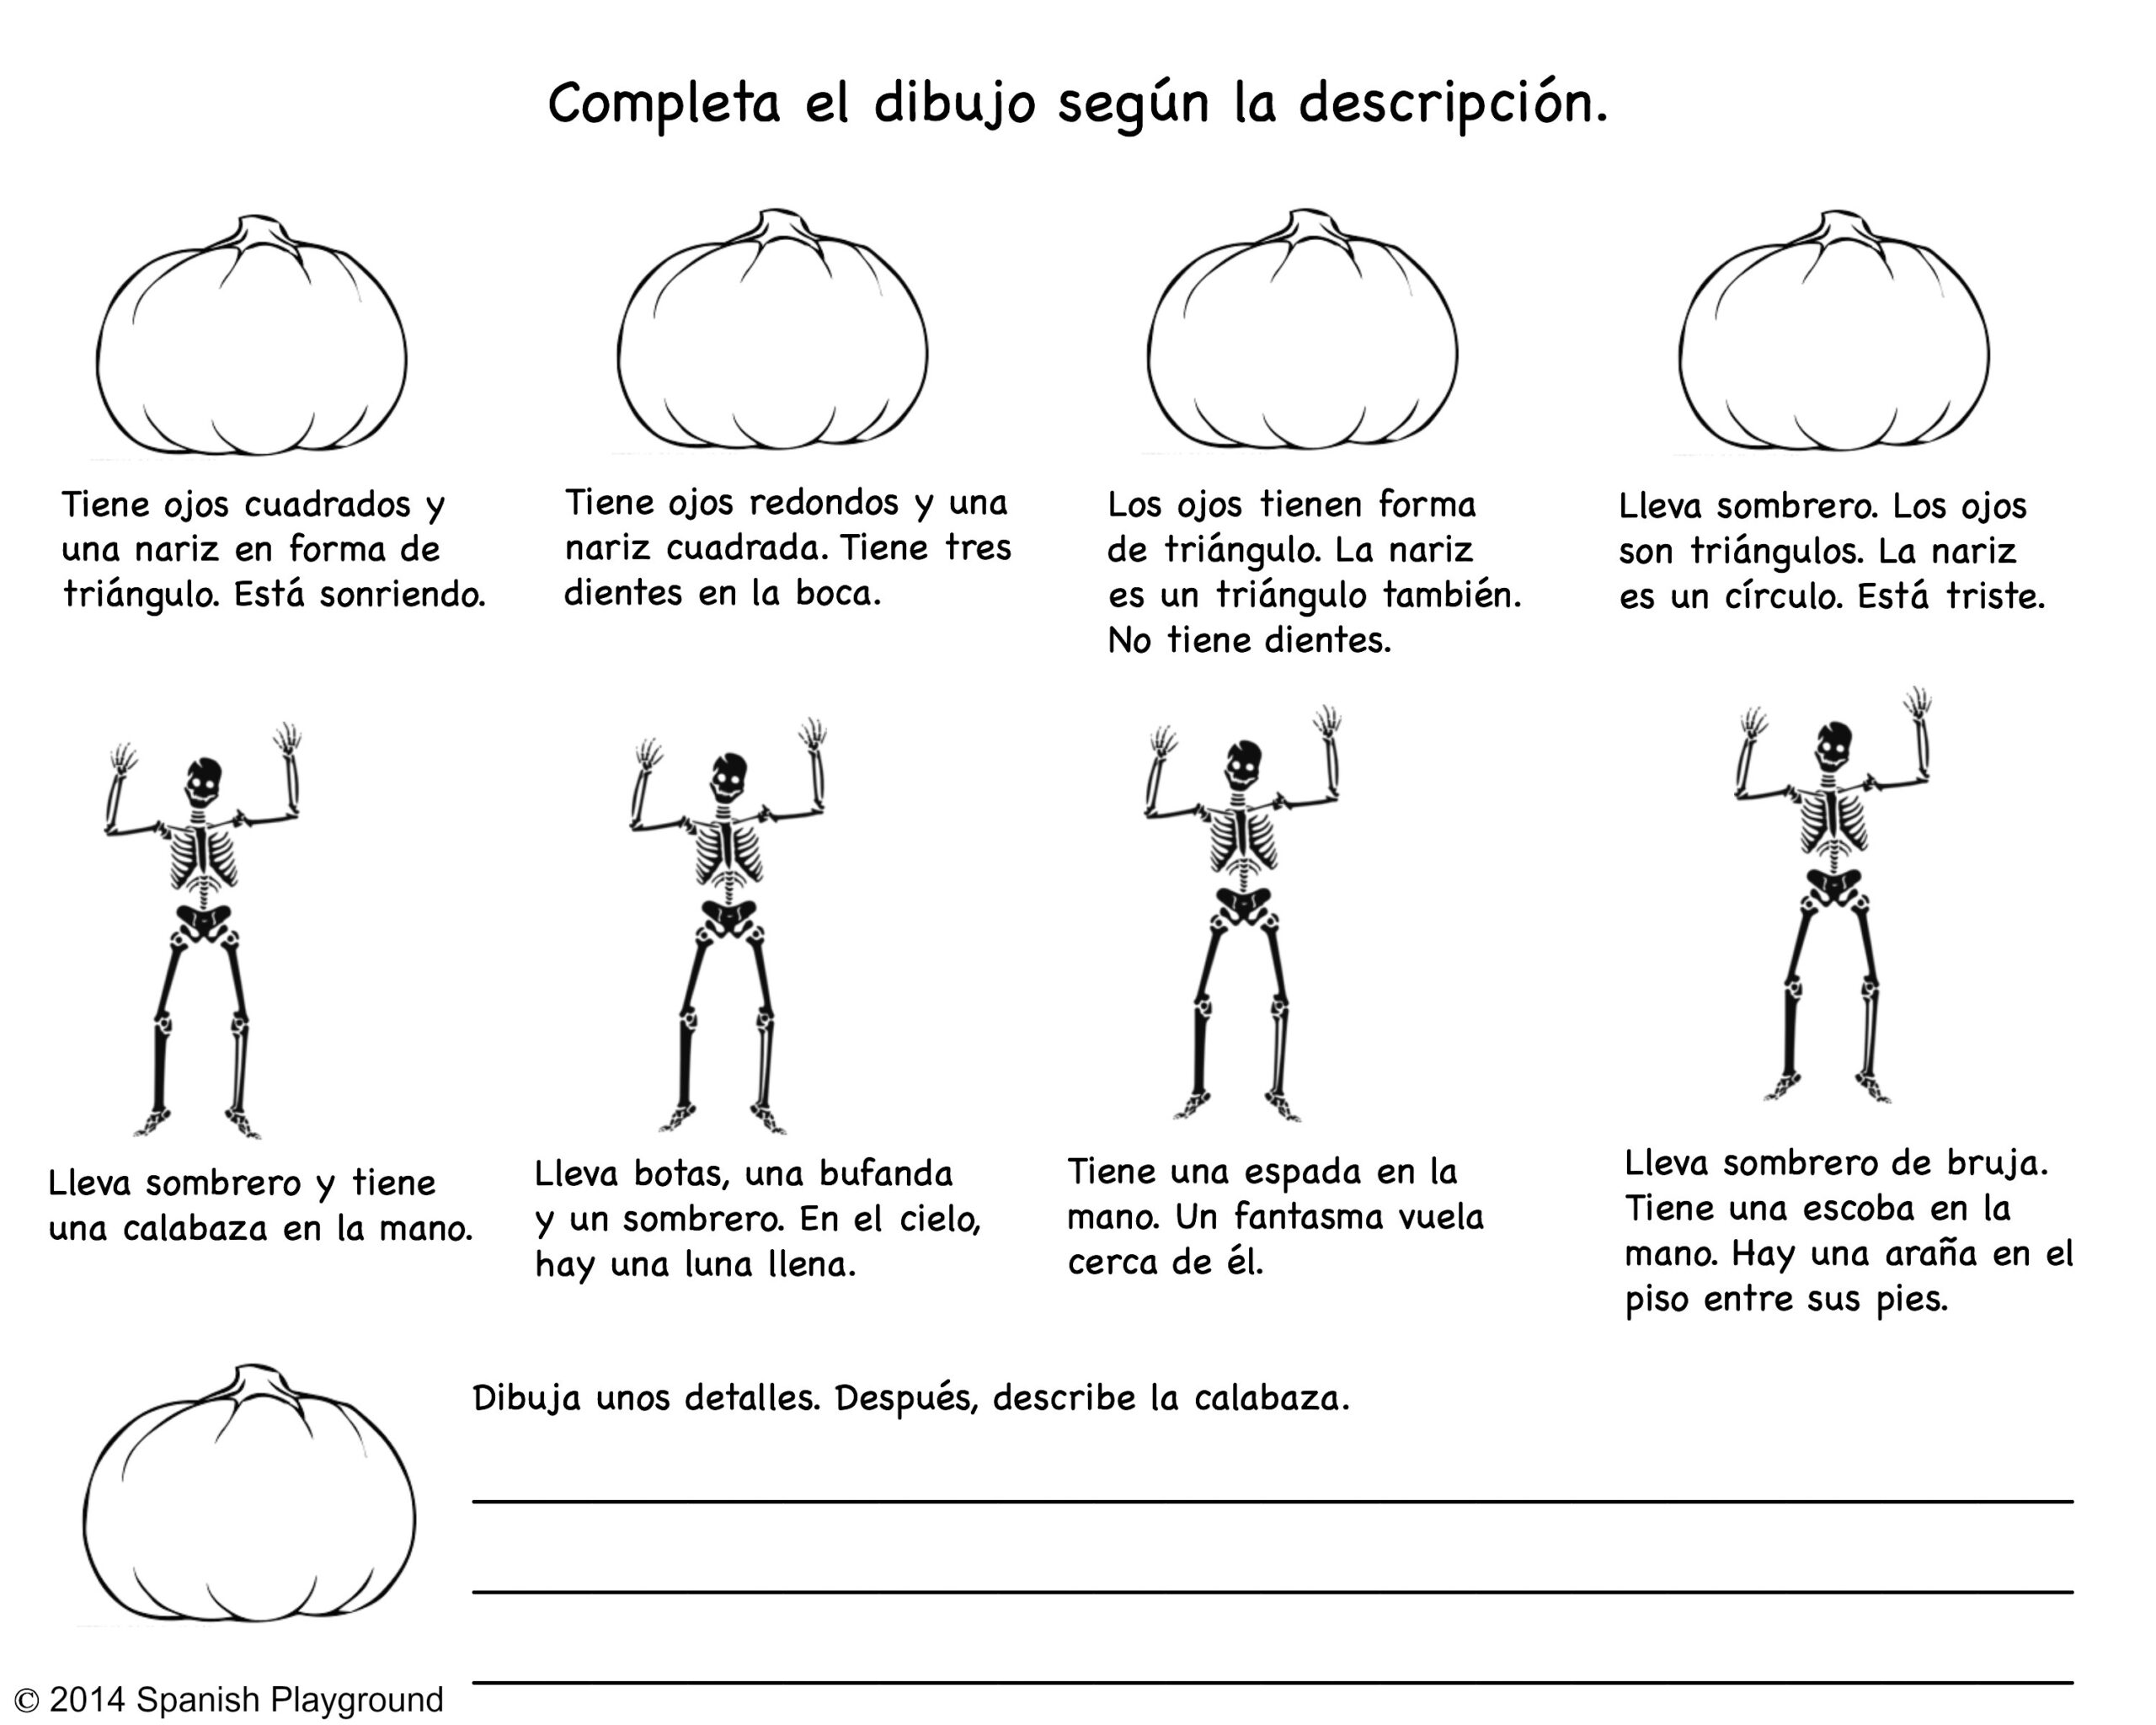 Spanish Halloween Read-And-Draw Printable - Spanish Playground